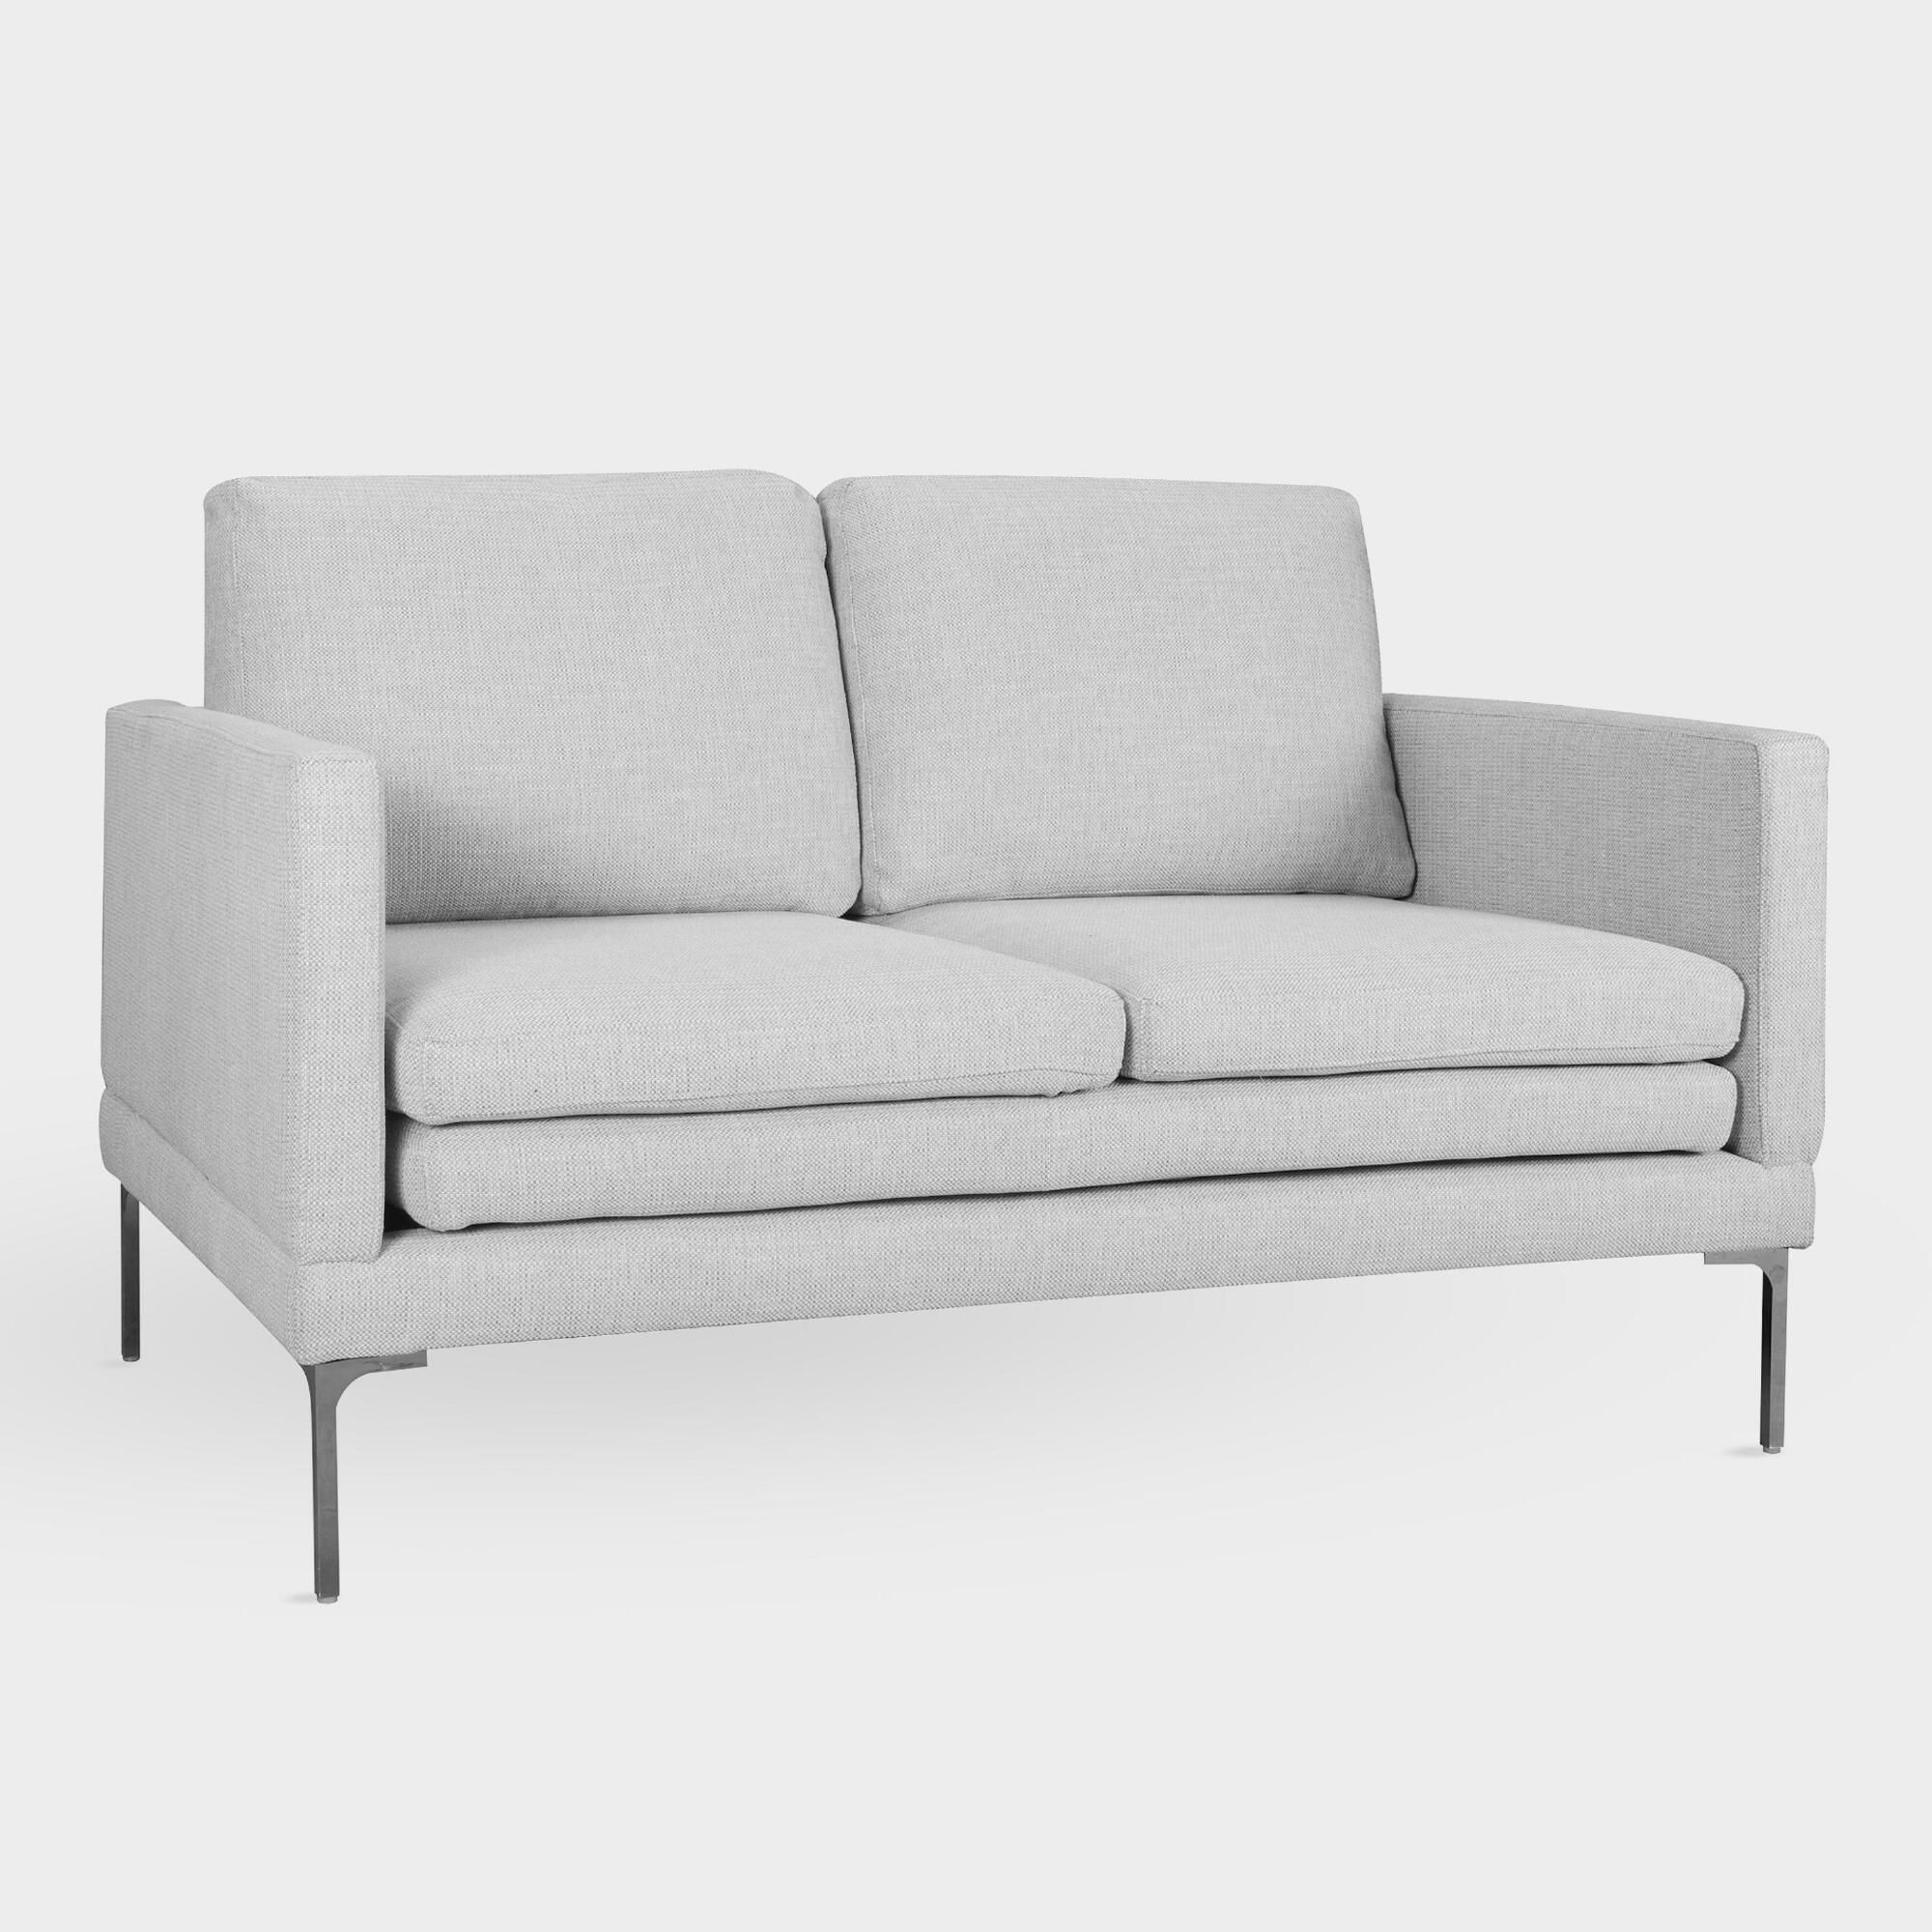 Phenomenal Dove Gray Gryffon Love Seat By World Market In 2019 Ncnpc Chair Design For Home Ncnpcorg